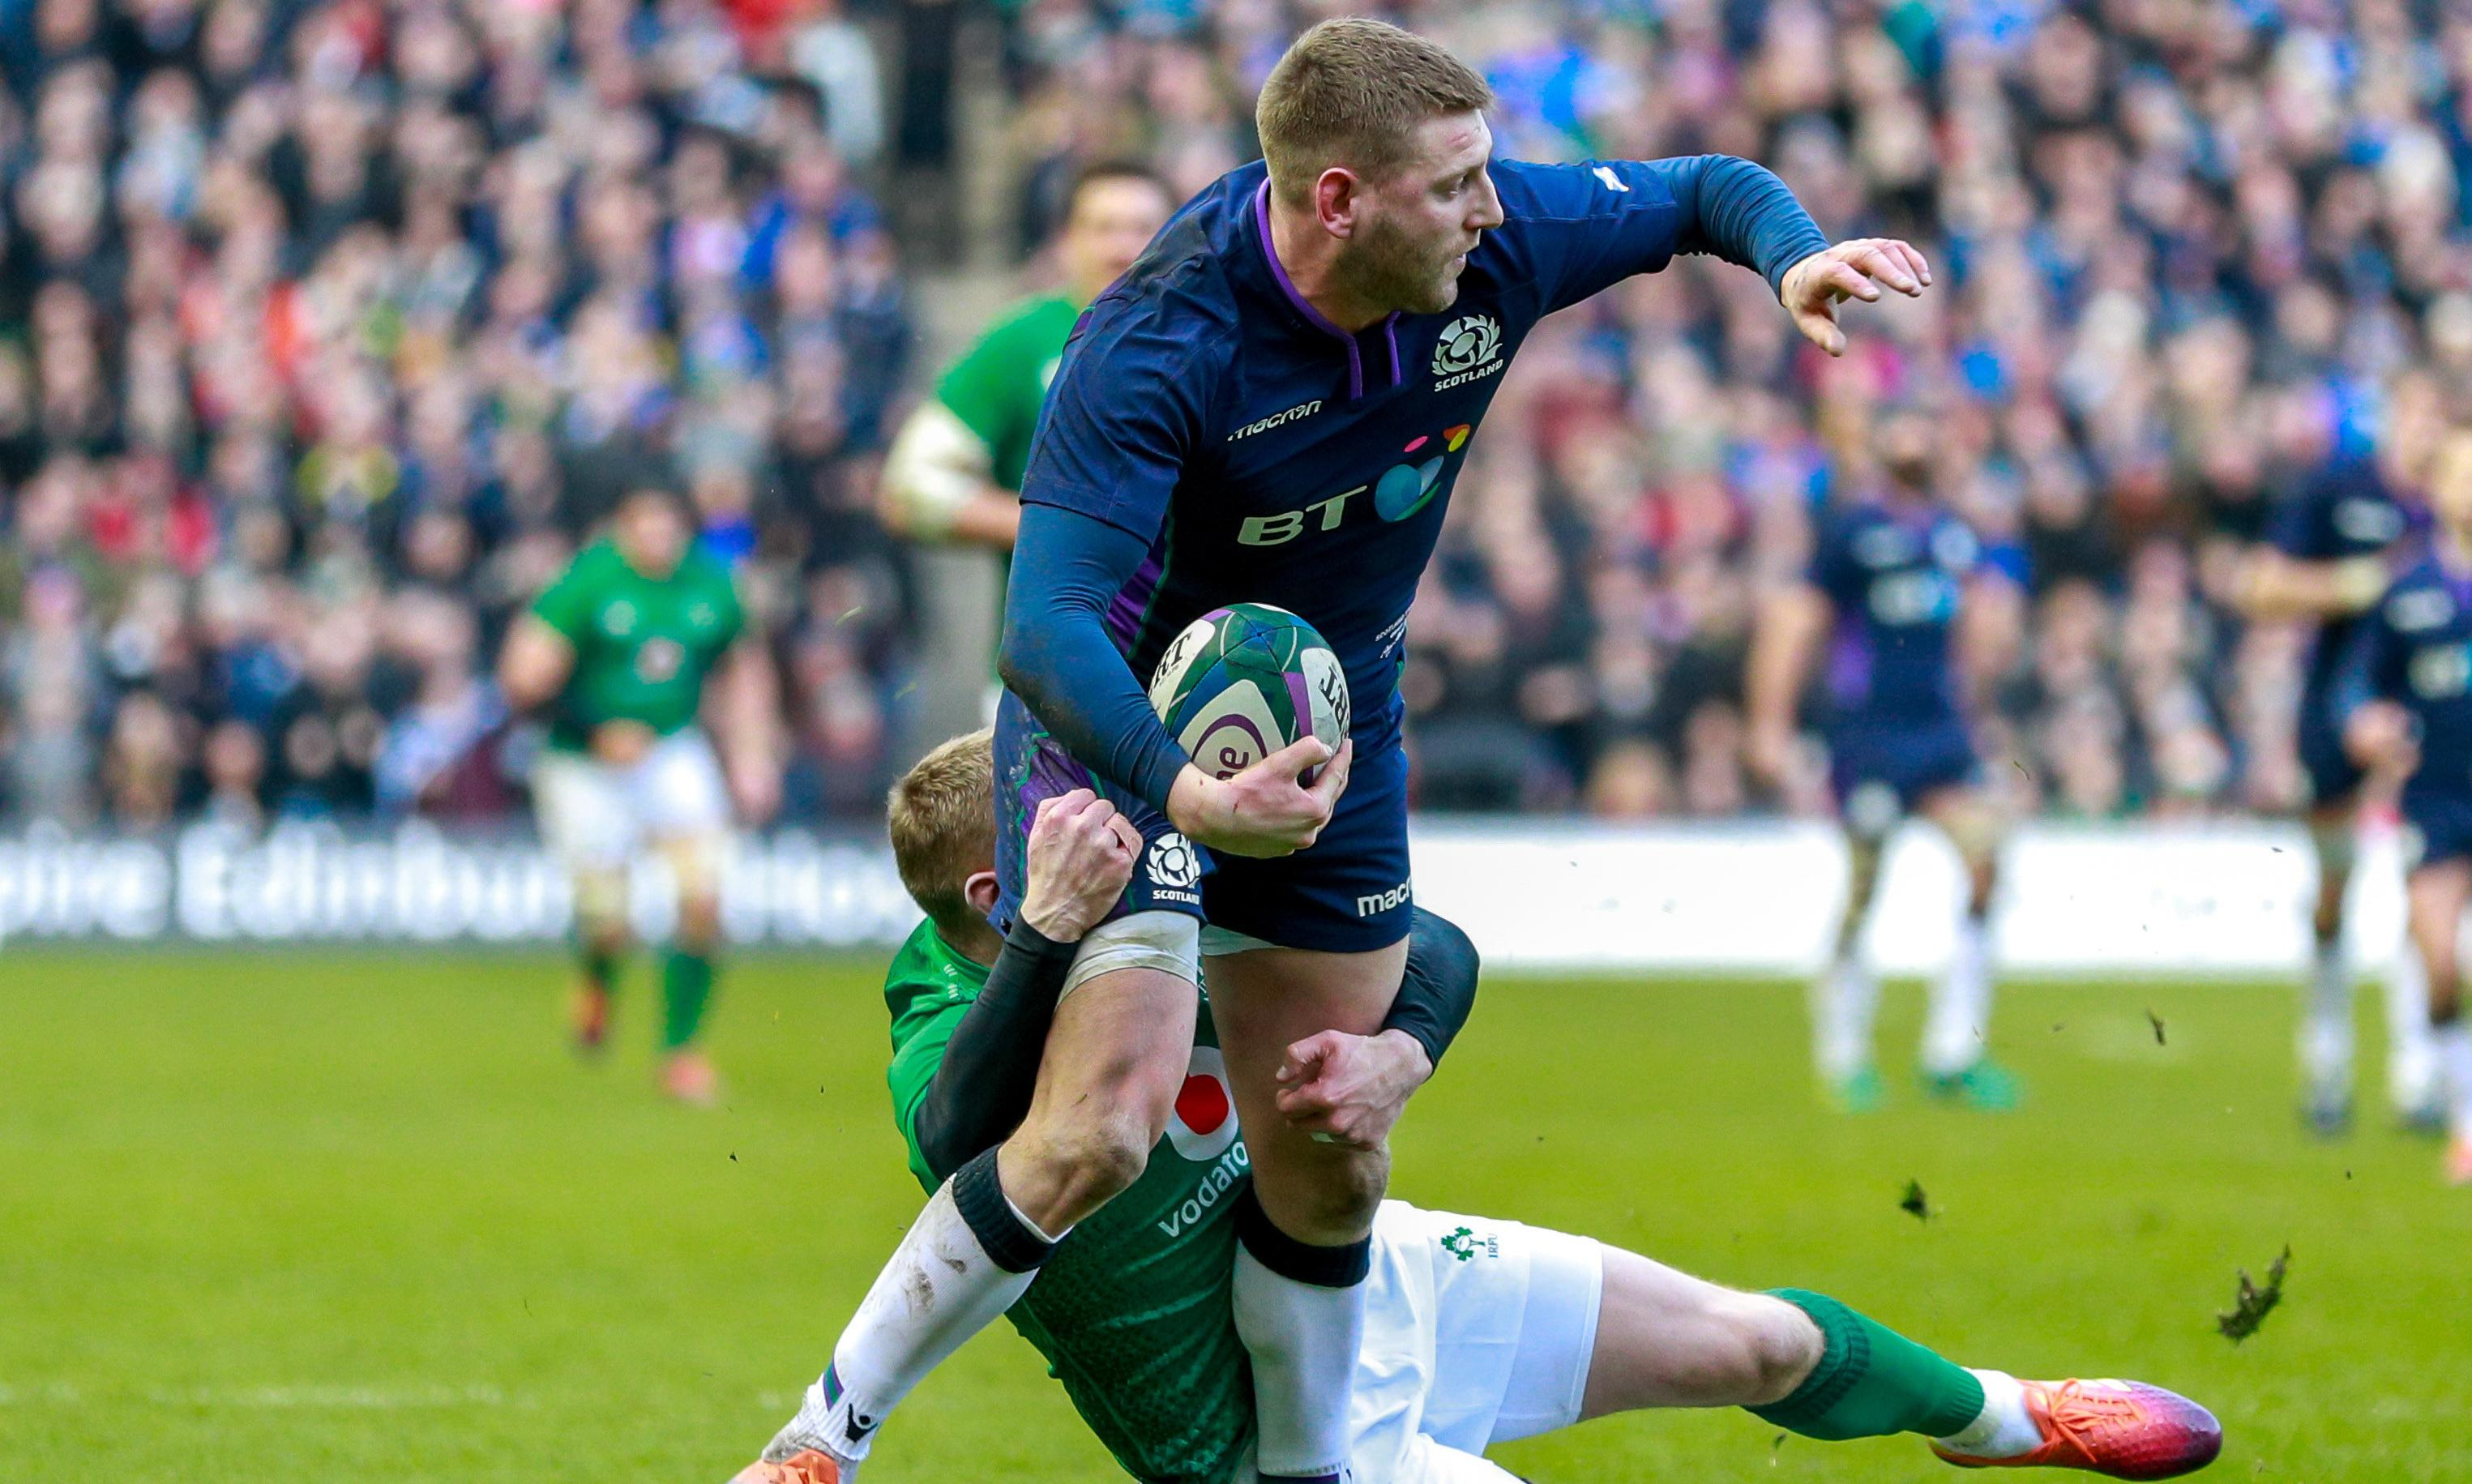 Scotland are hopeful Finn Russell will be fit to face France in Paris